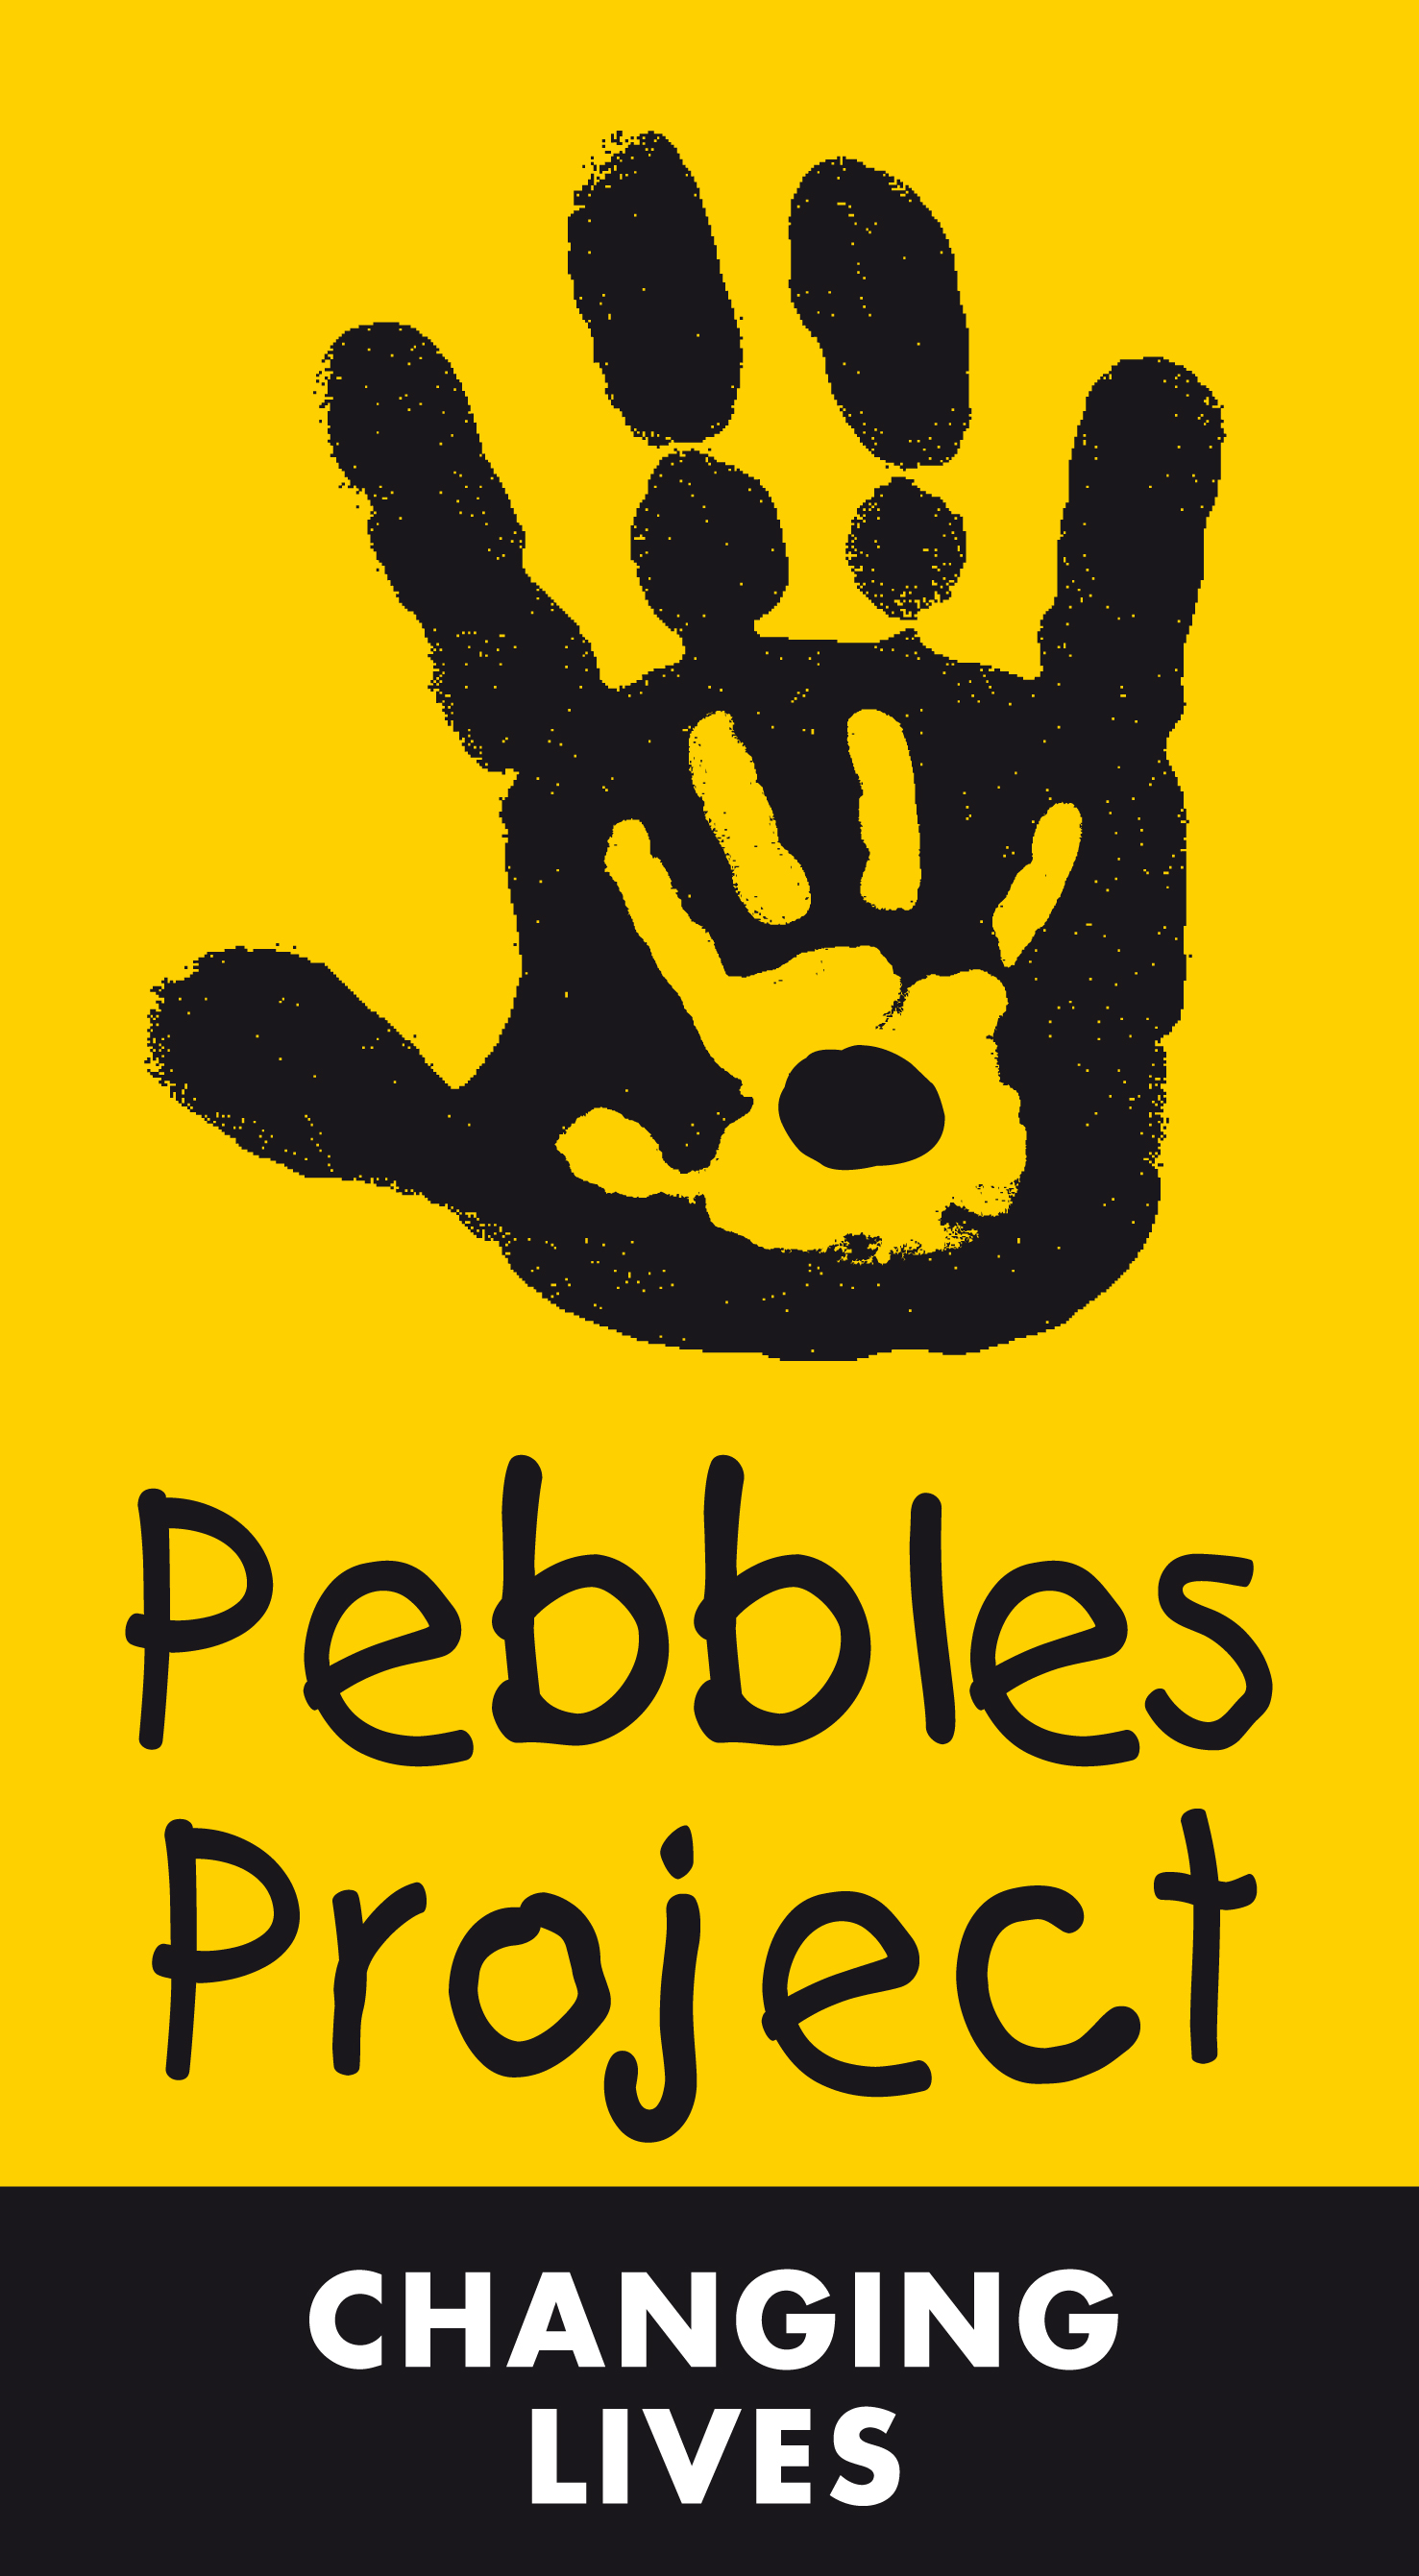 The Pebbles Project Trust